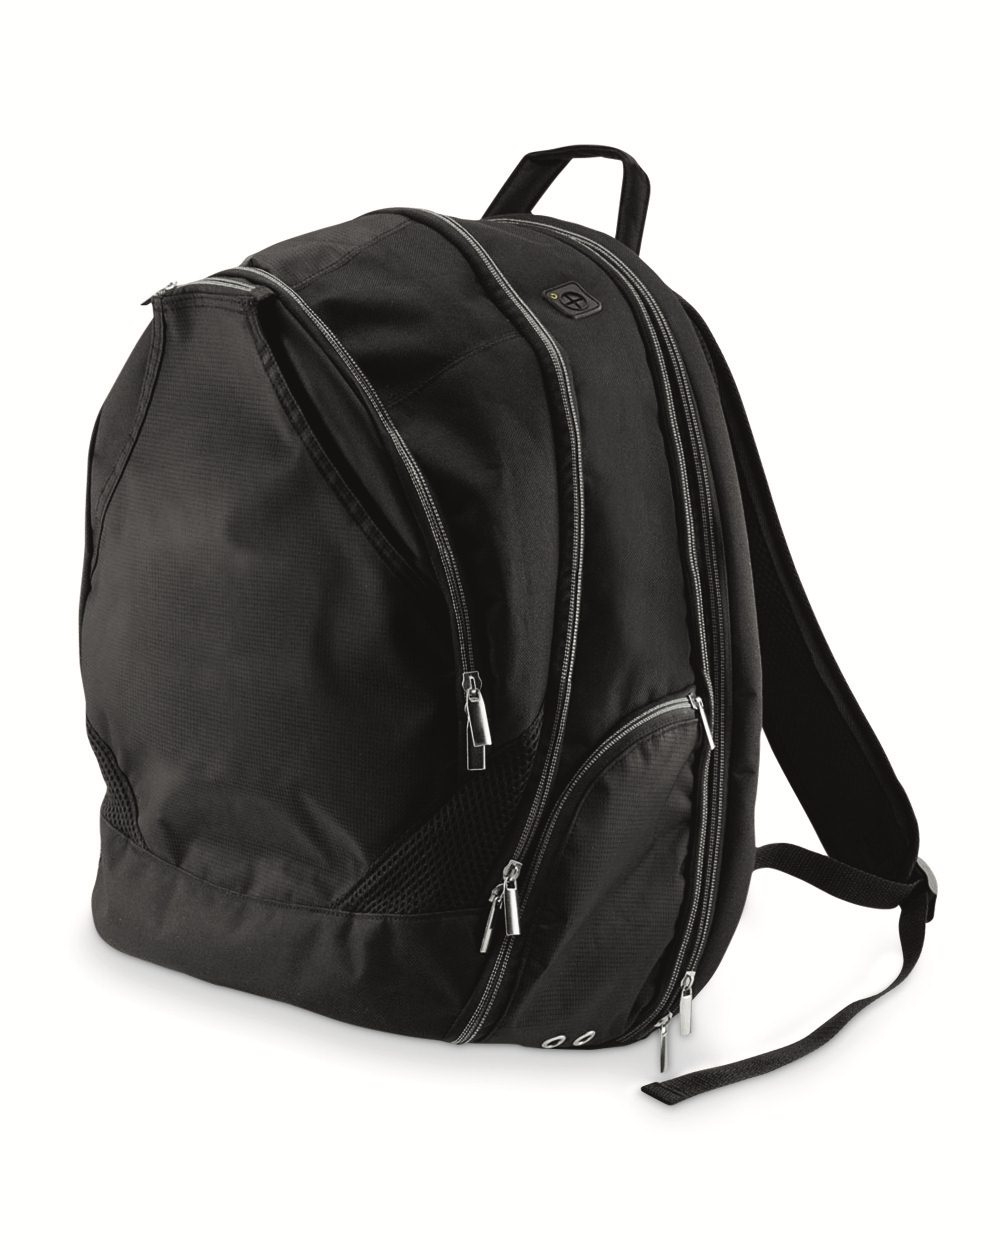 Valubag 19 Inch Backpack - VB0919